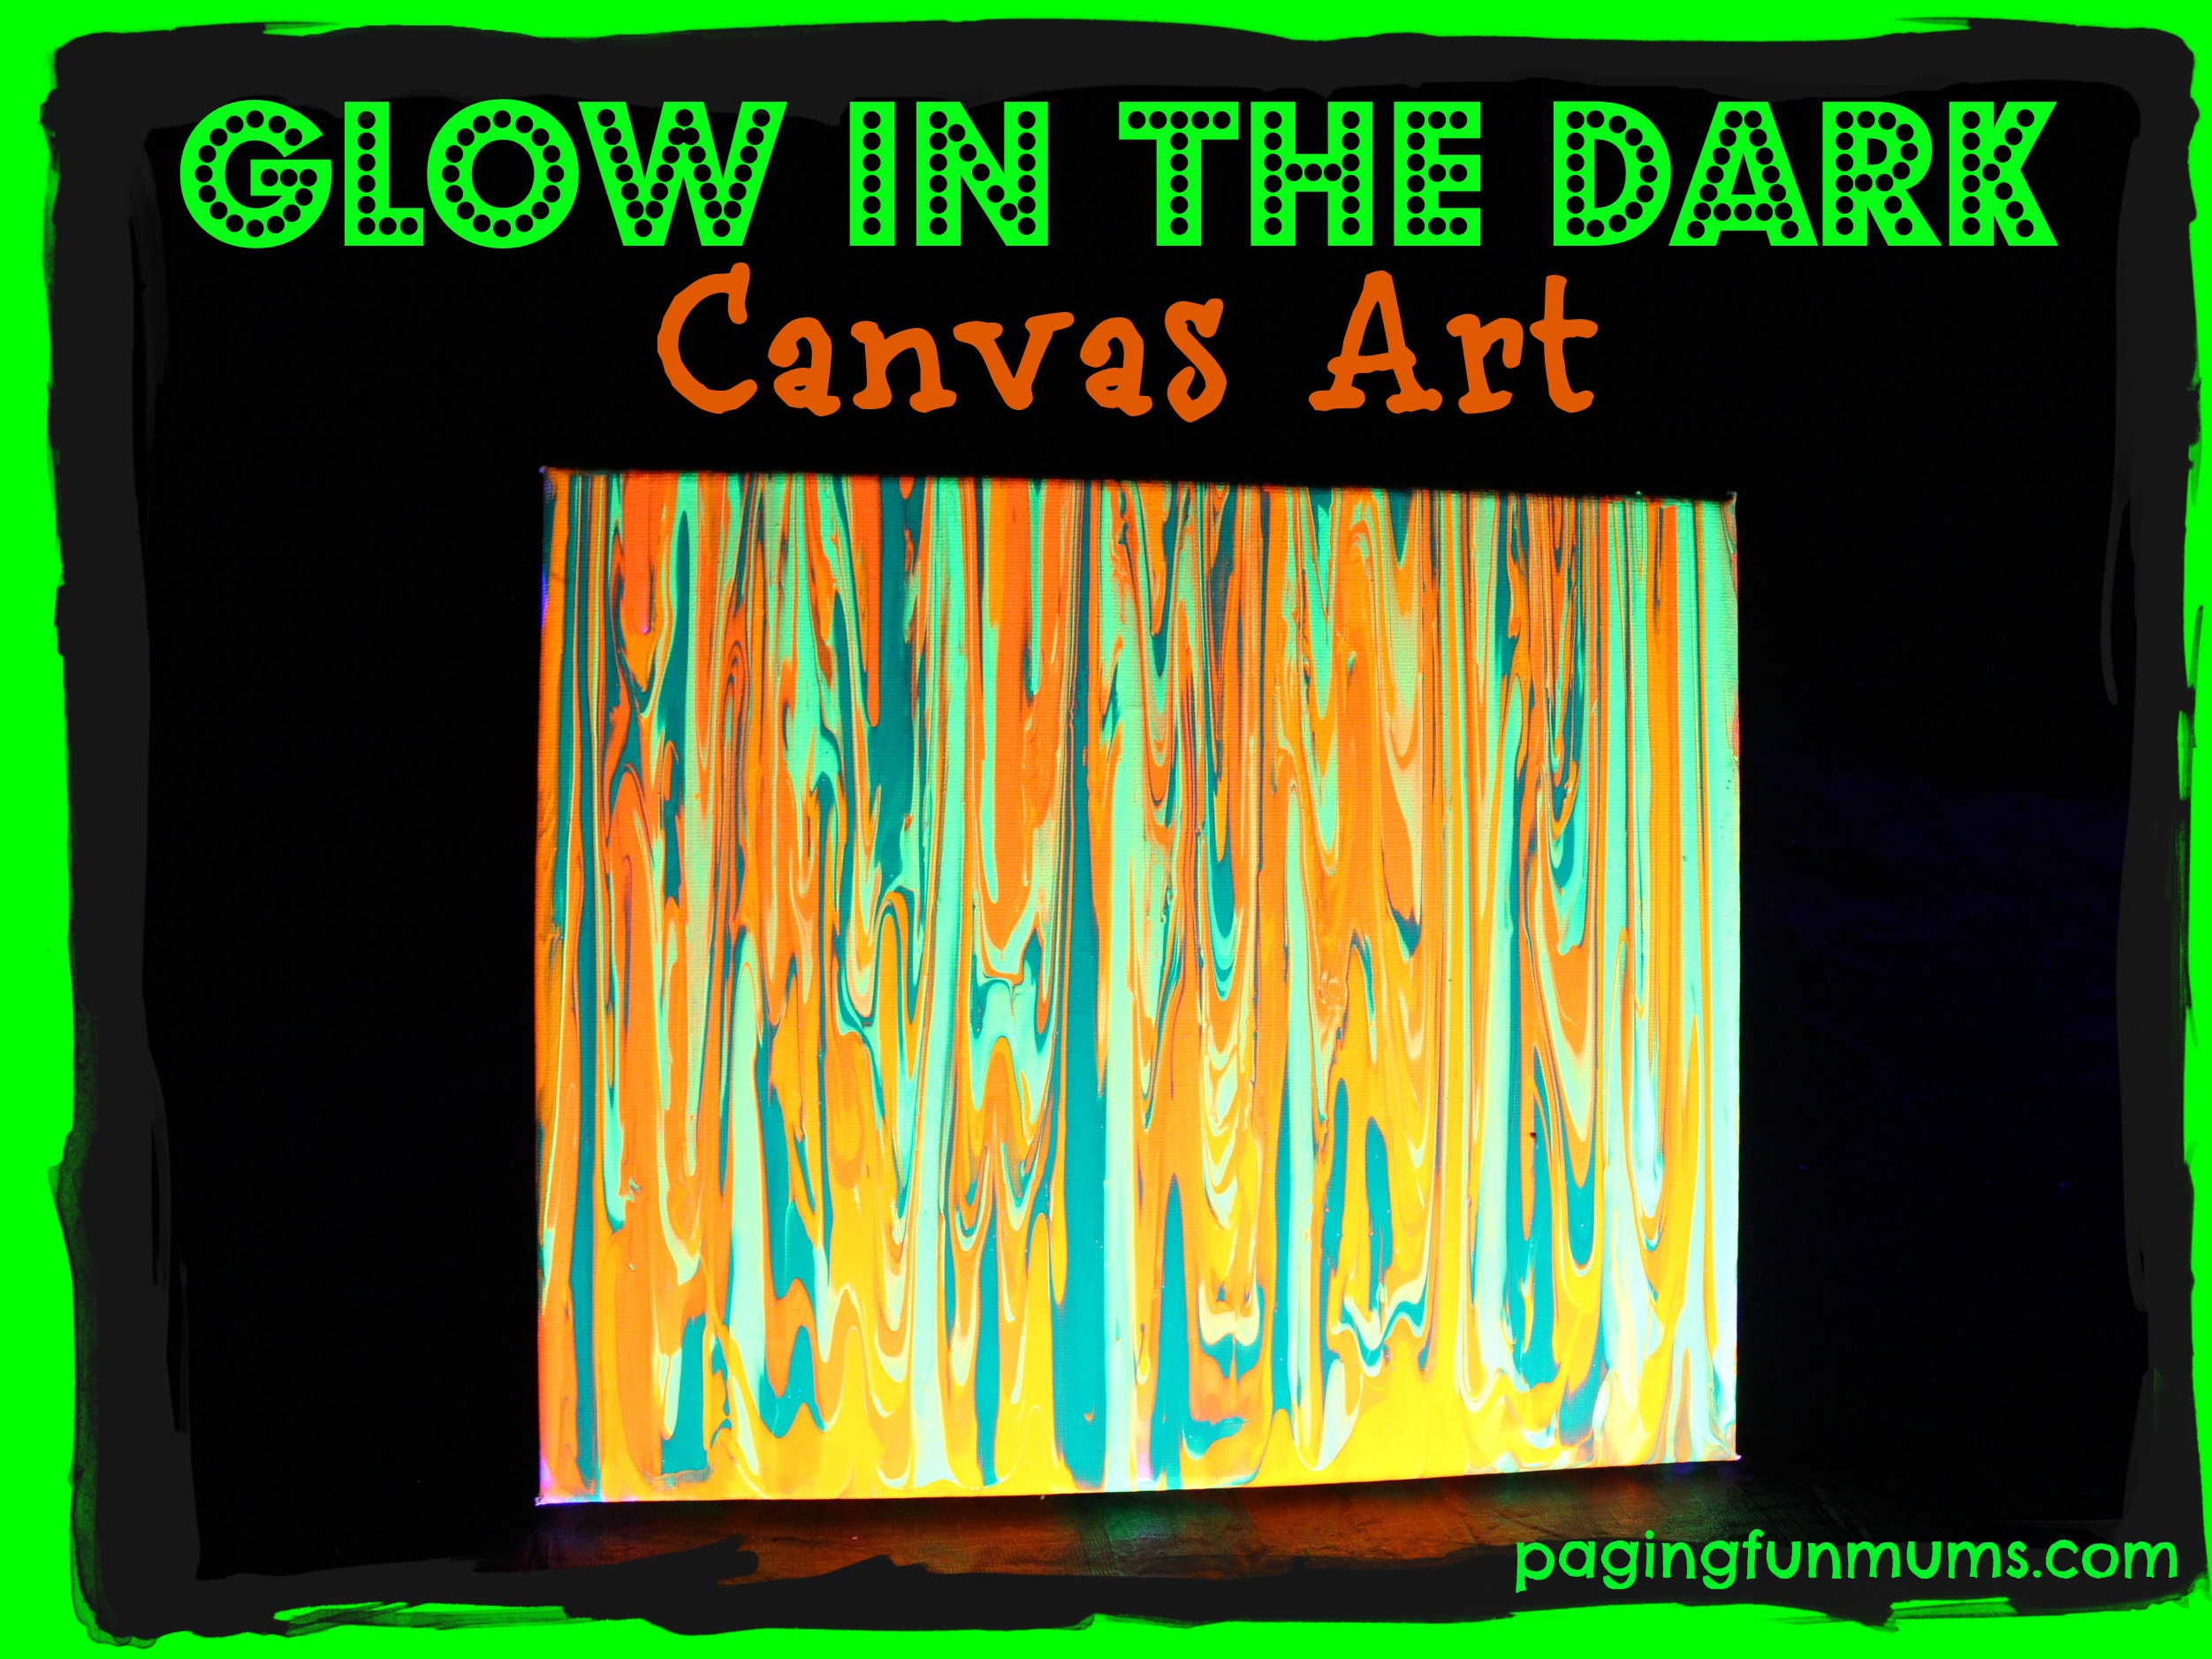 Glow in the dark canvas art